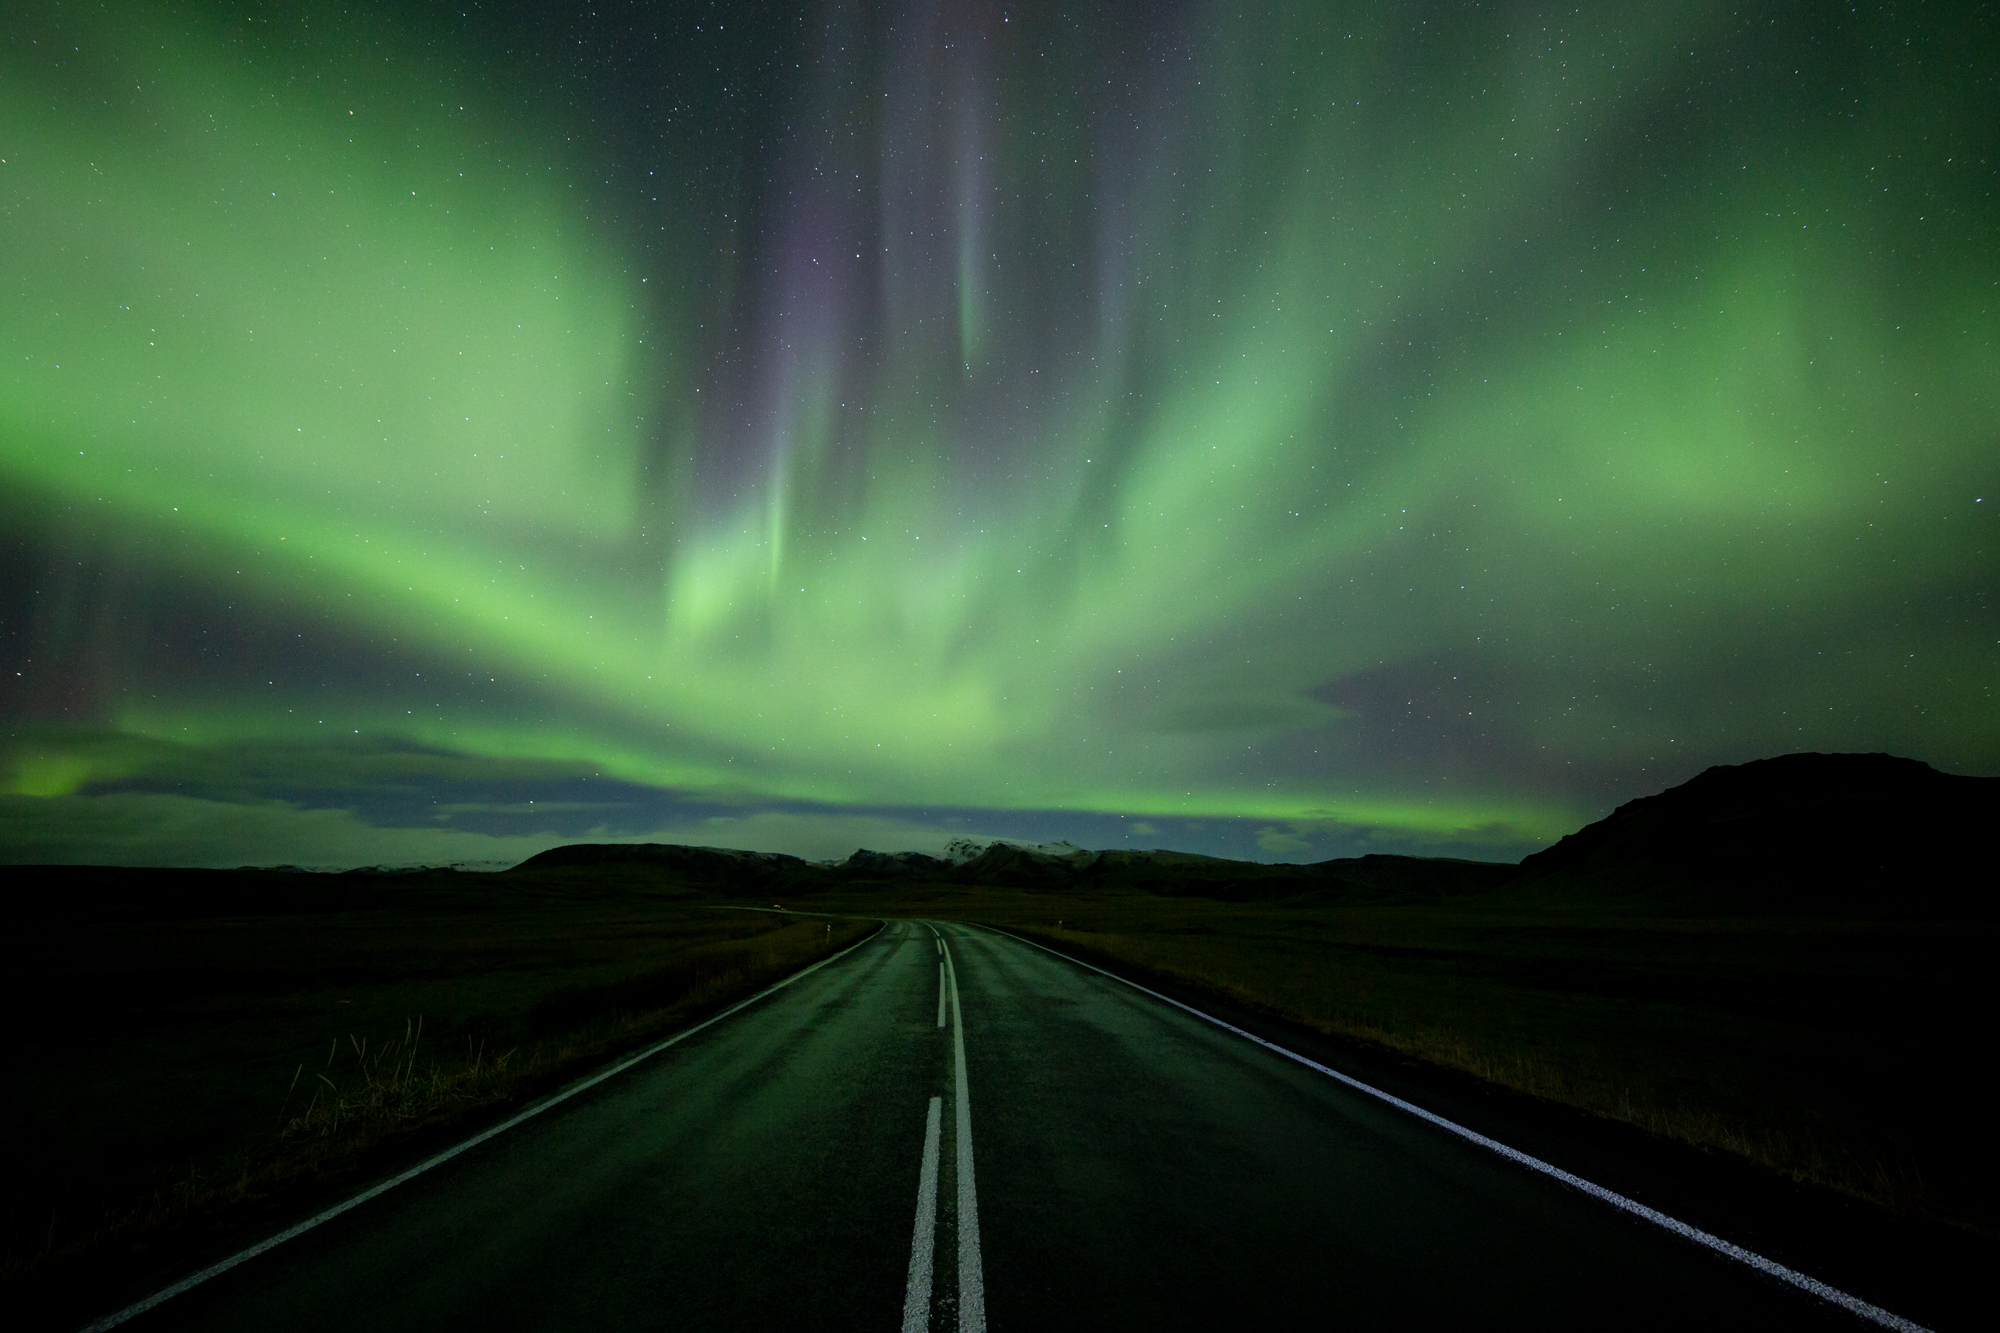 """The Road North""  The Aurora Borealis dances in the sky during a solar storm in early October. Though I have spent a lot of time in the far north, I had never had the chance to see the colorful lights that illuminate the poles of the planet when the sun dips far enough below the horizon to create a dark sky. The flickering and dancing curtains of the aurora are a humbling sight because without them, life as we know it would not be possible. The earth's inner core and unusual atmosphere block the sun's powerful radioactive storms, allowing life as we know it to flourish oblivious to the ferocity of outer space."